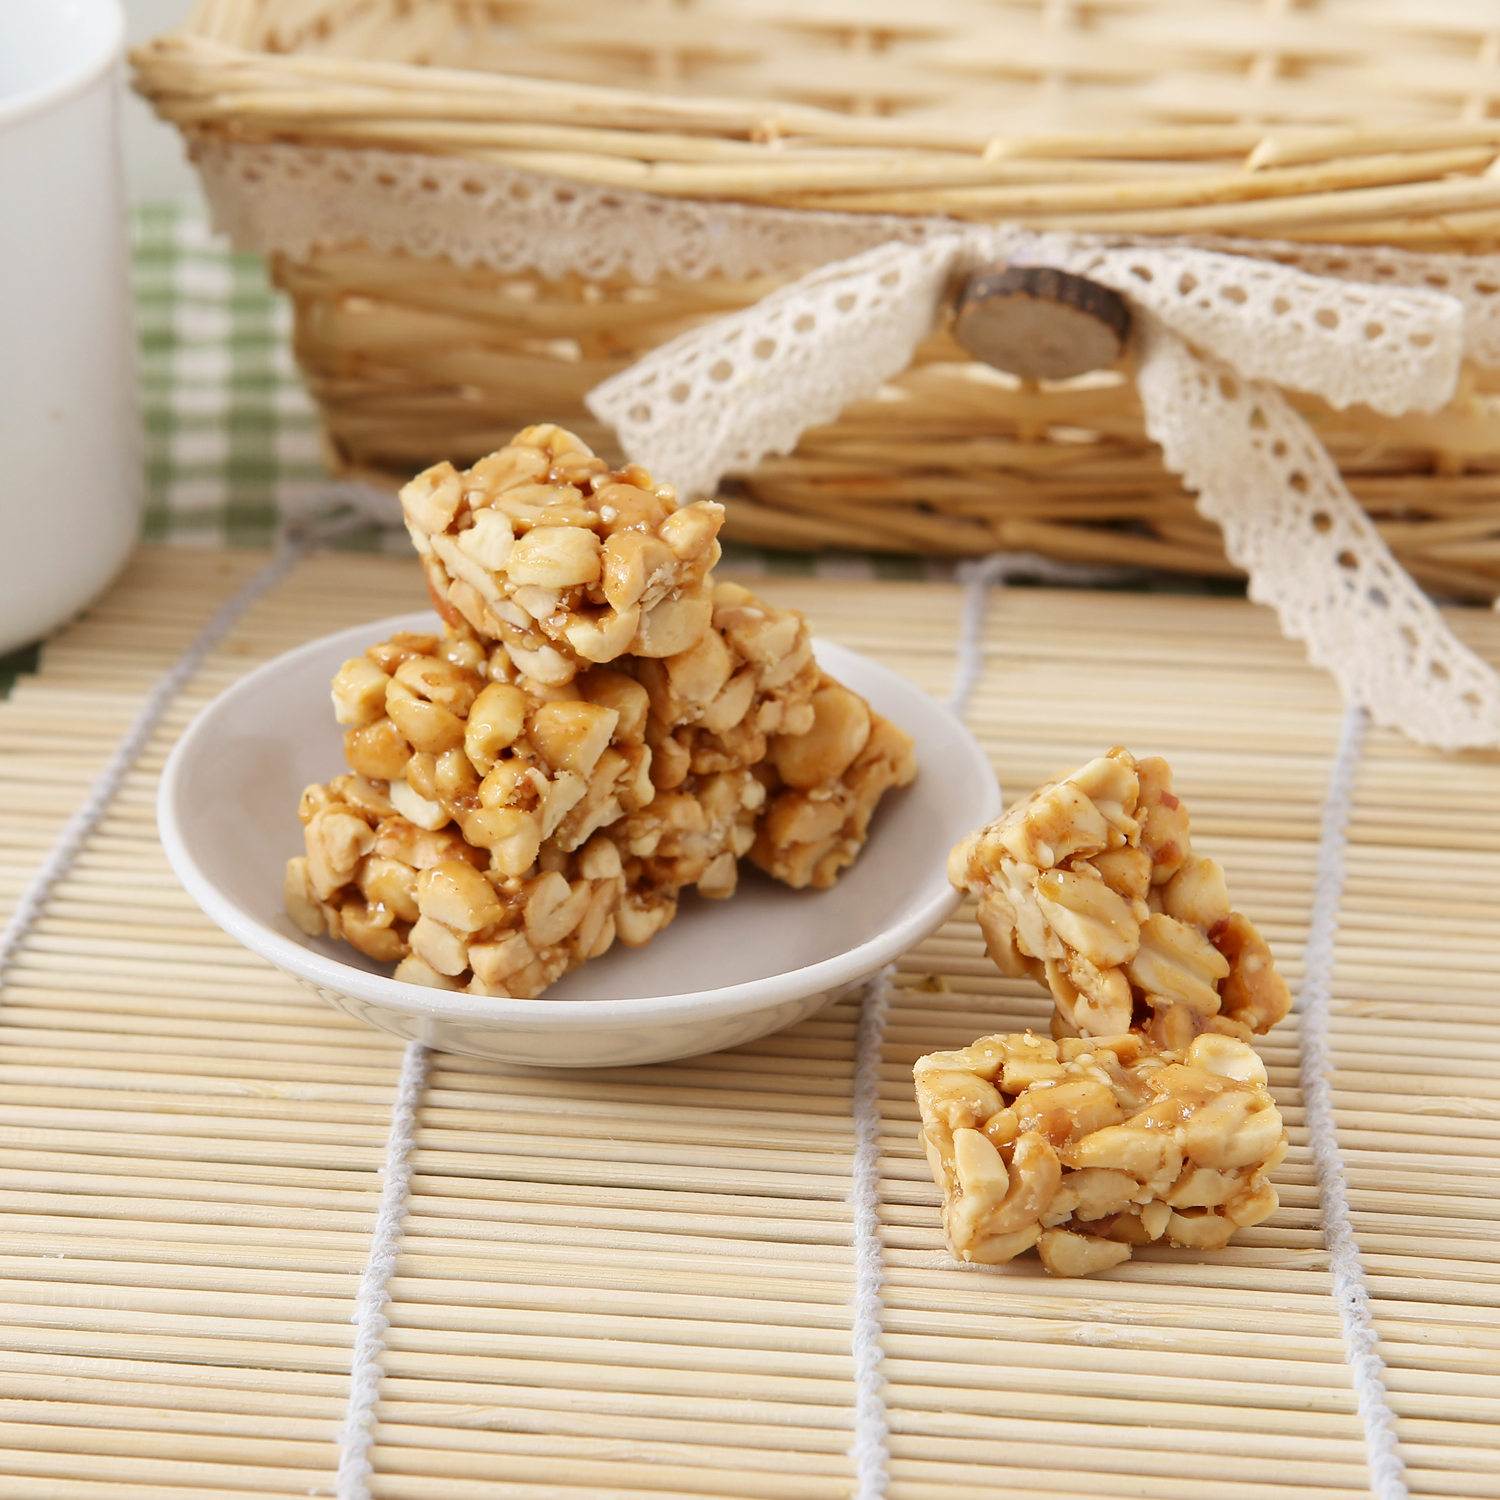 Hot Selling Nuts Candy Fragrant Crisp PEANUTS Nut Snacks Peanut Hard Candy Hand Made Normal HACCP Sweet Bag